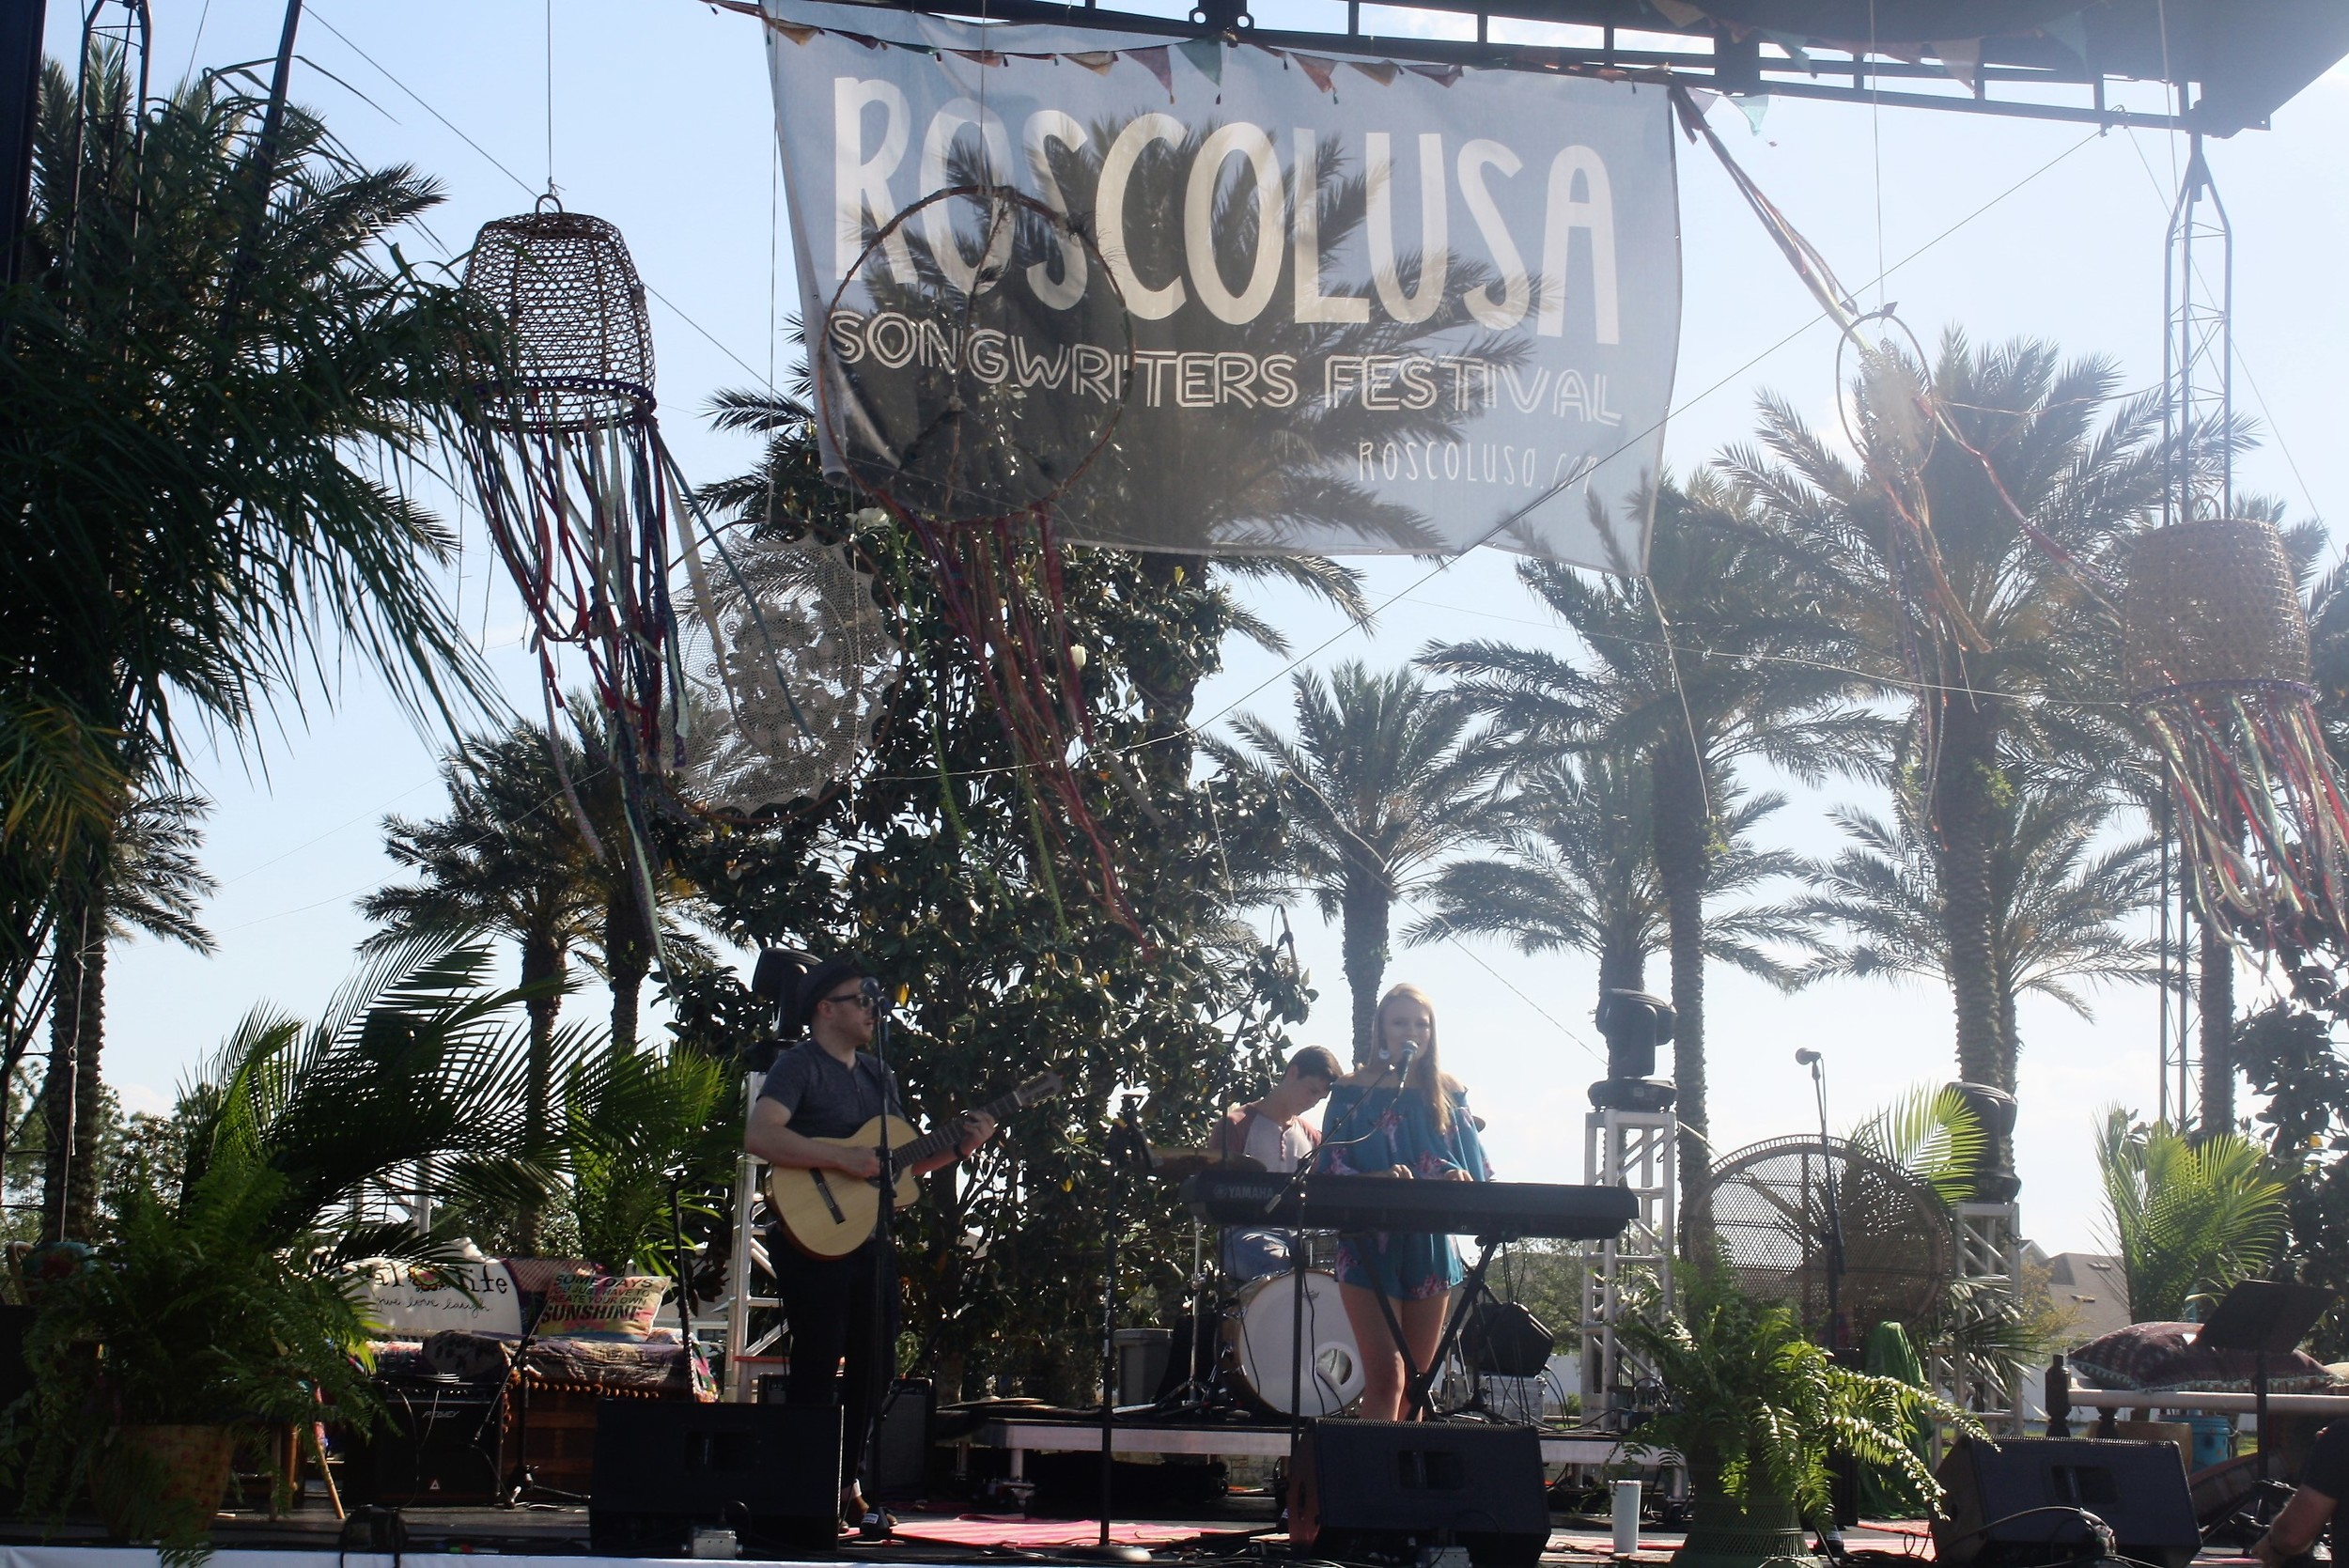 The 6th annual Roscolusa Songwriters Festival returned to Nocatee Saturday.